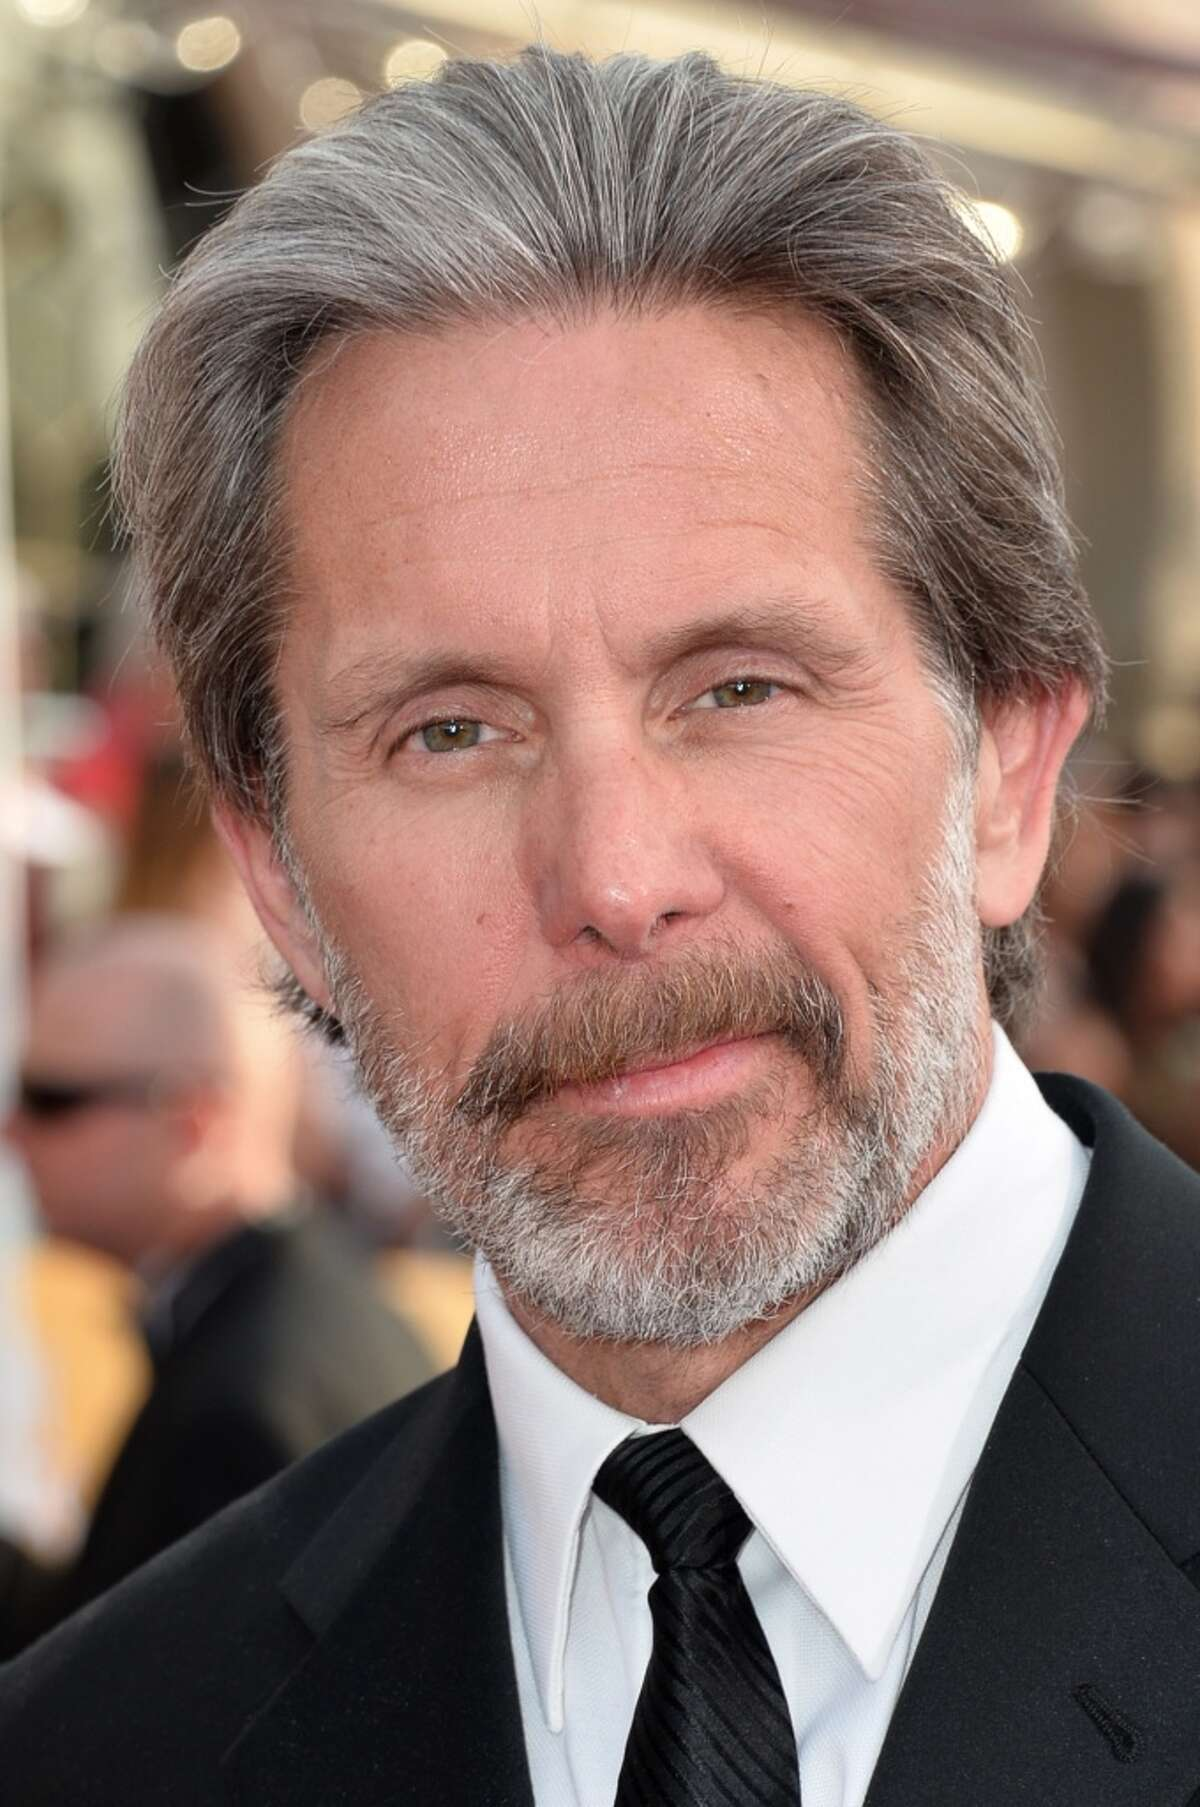 Passive-aggressive Bill Lumbergh, played by Gary Cole, gave bosses everywhere a bad name. Real-life Cole probably isn't that bad. He just finished up filming